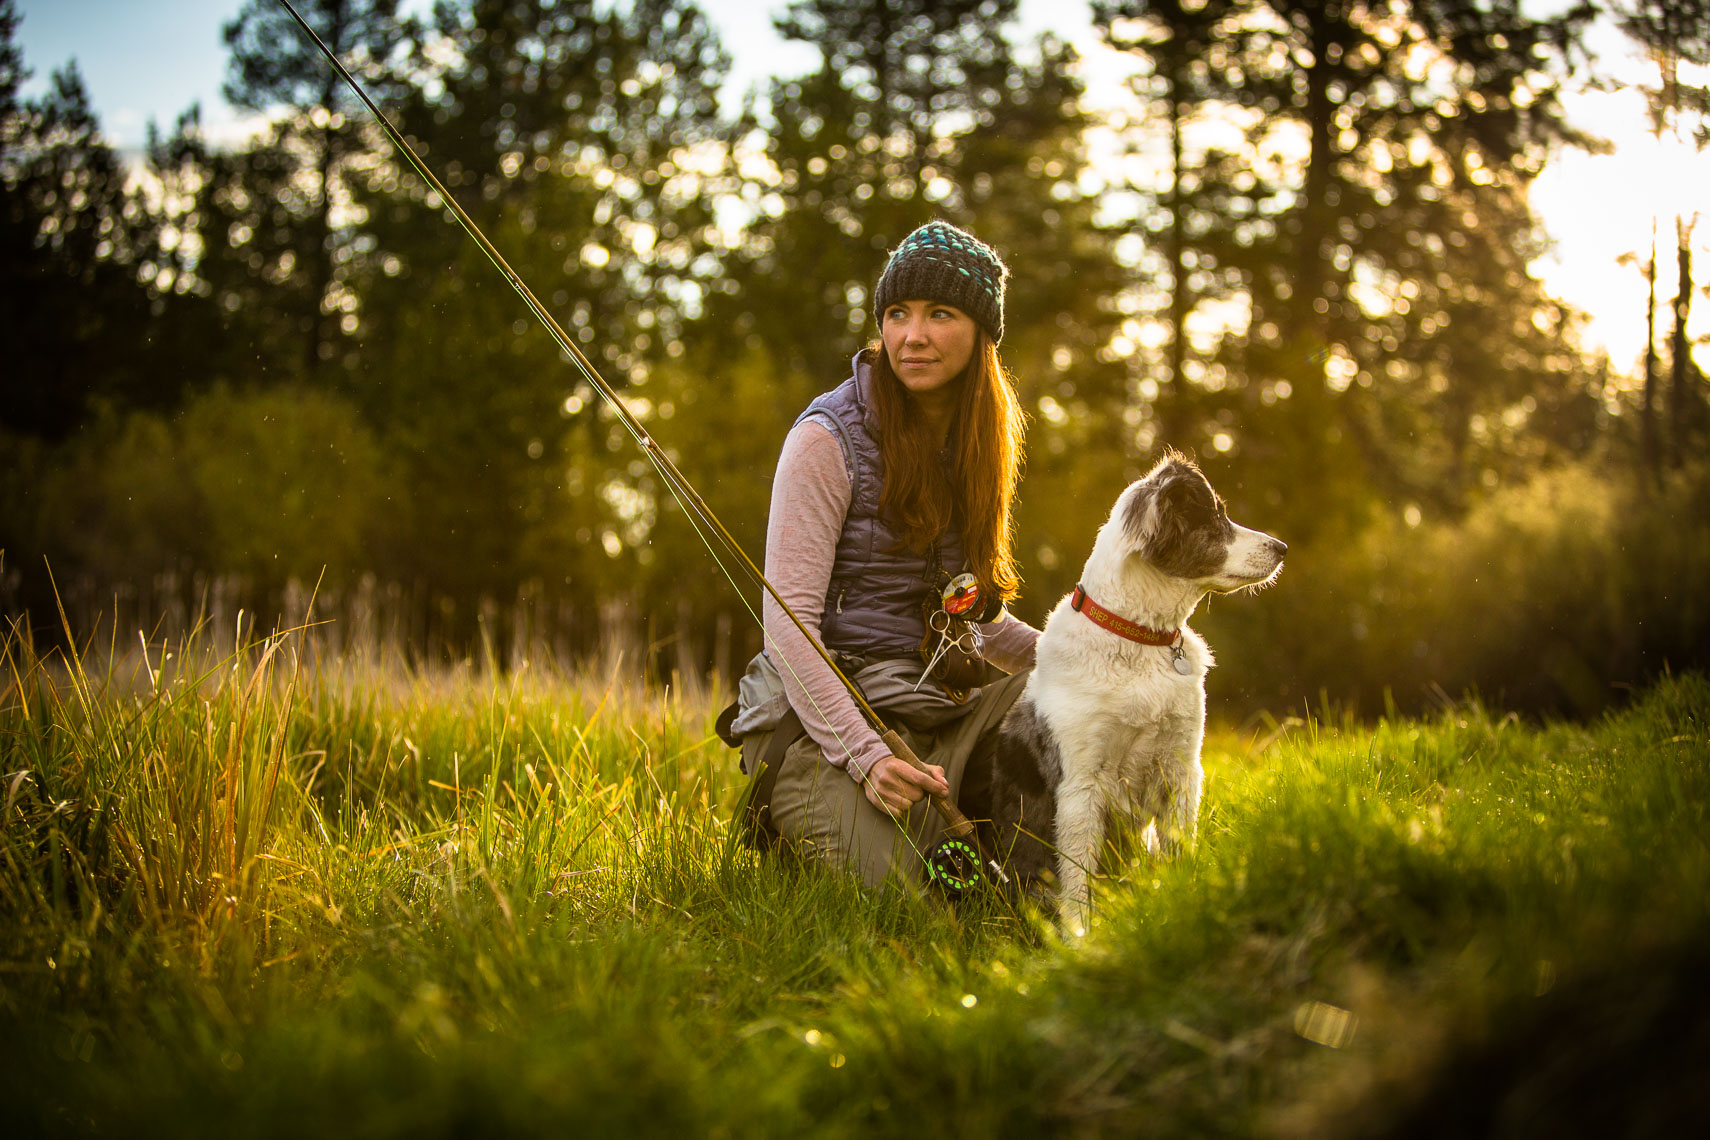 Portrait of Flyfishing Woman with Dog